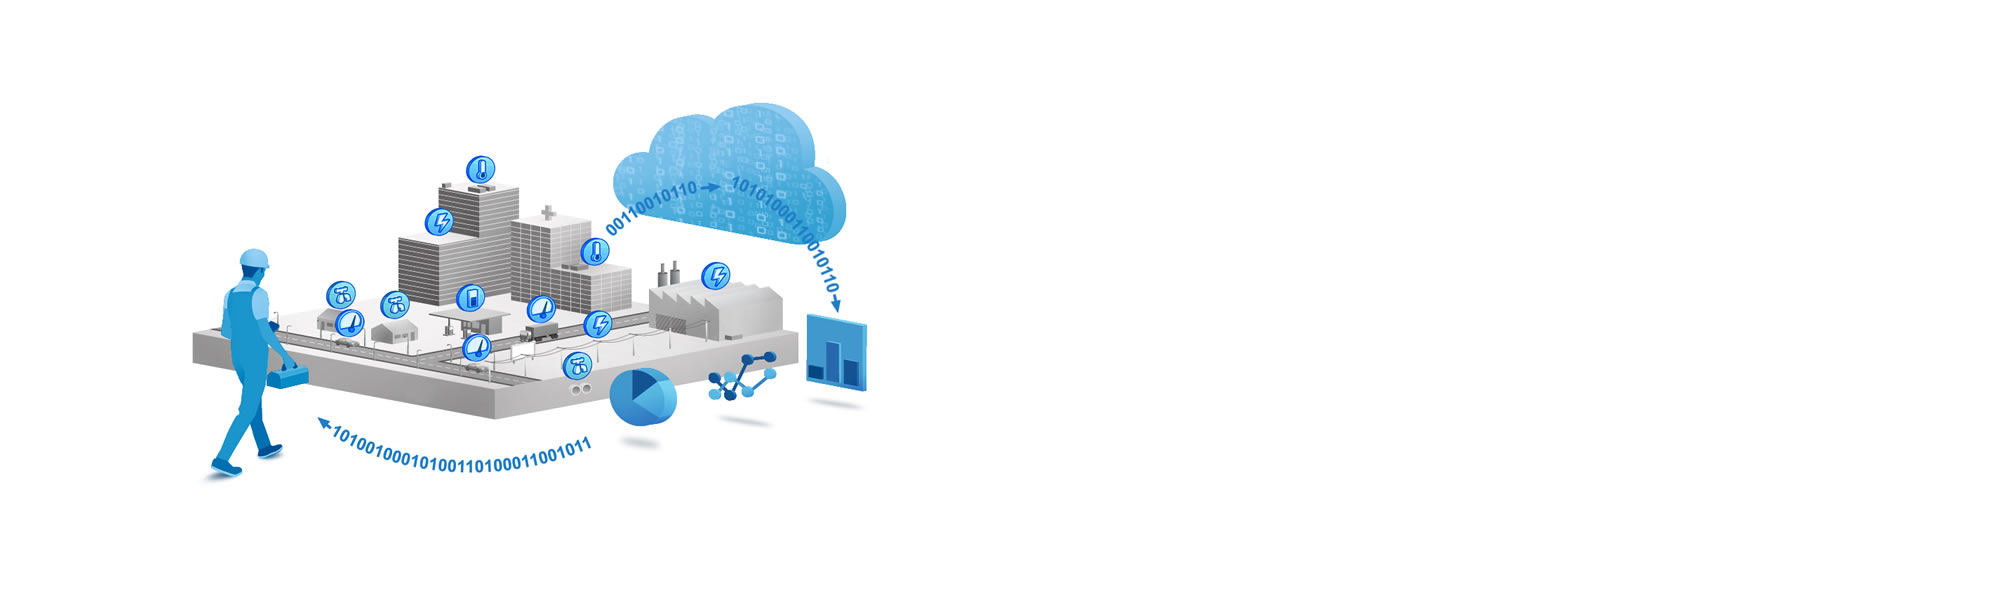 What is Azure IoT Suite and how to use it